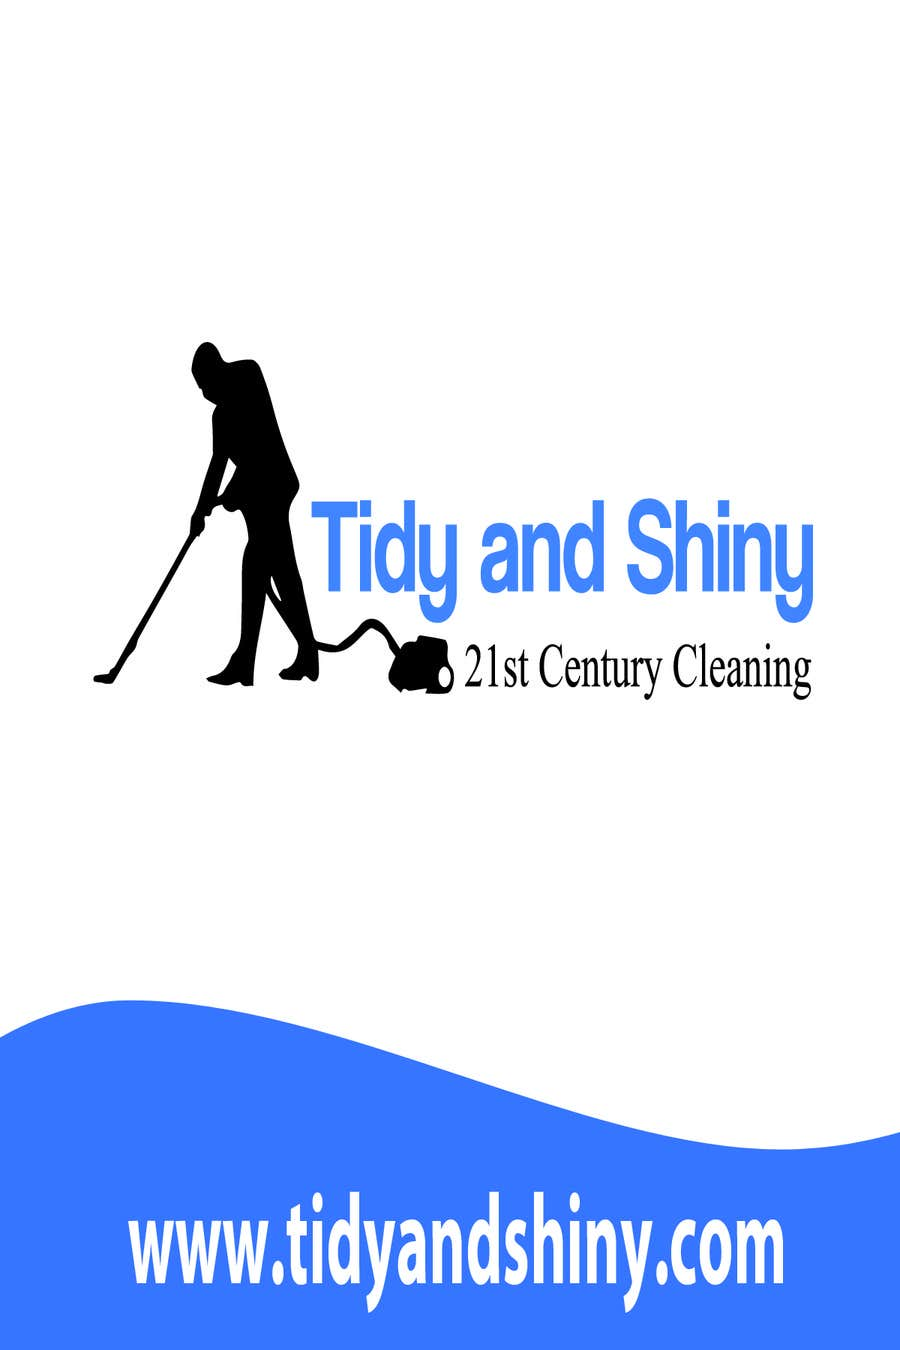 Konkurrenceindlæg #32 for Design a Flyer for Tidy and Shiny Cleaning